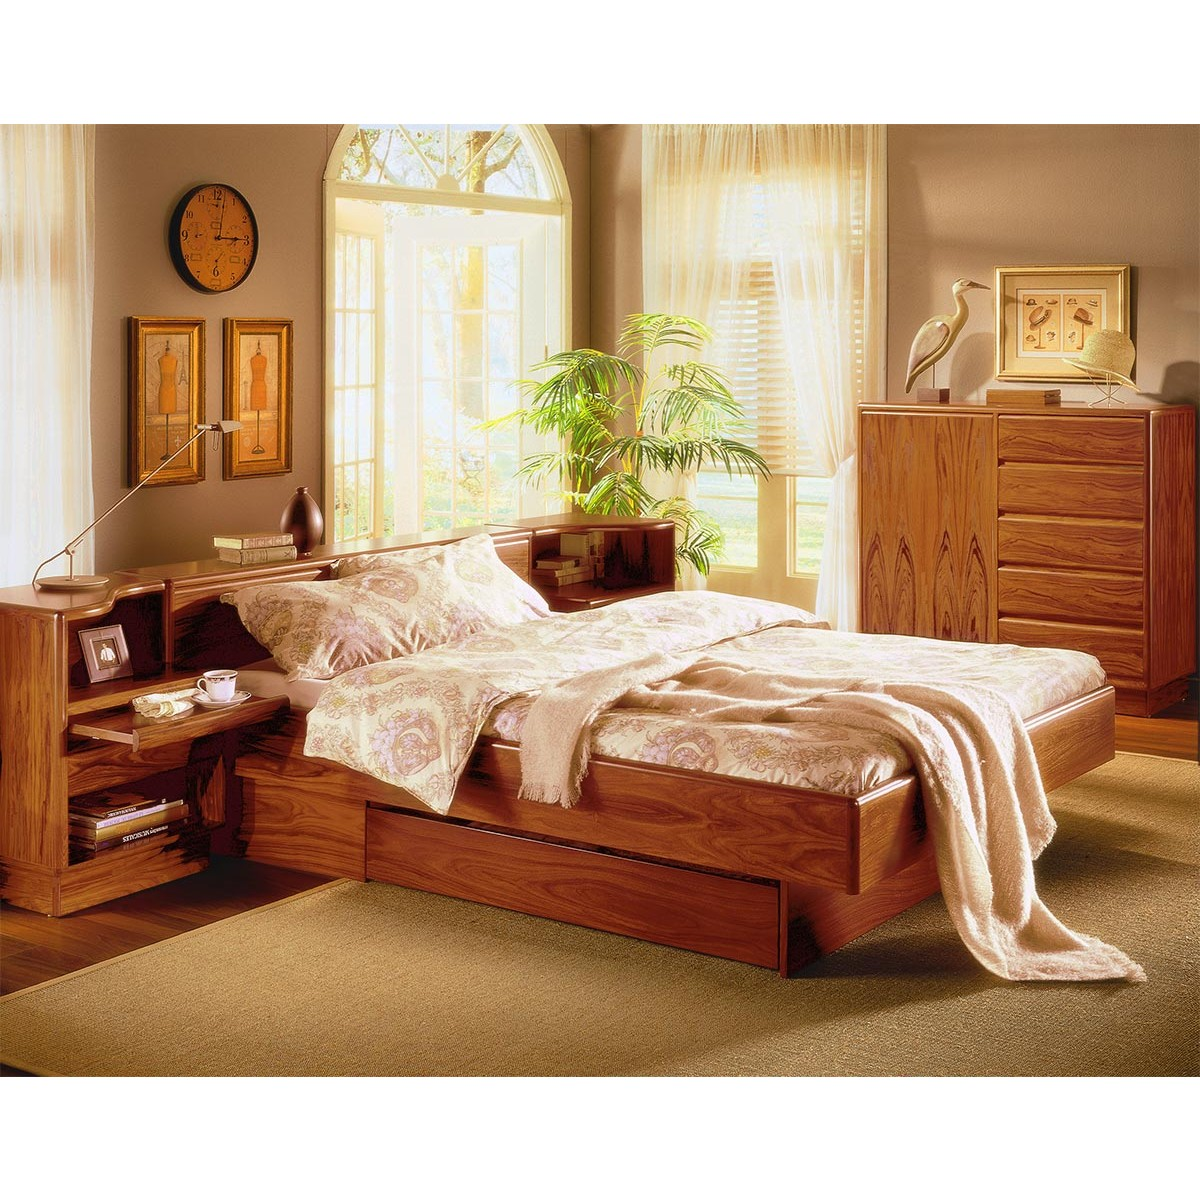 Meubles Mobican Furniture Mobican Bedroom Furniture Sonoma Contemporary Bedroom By